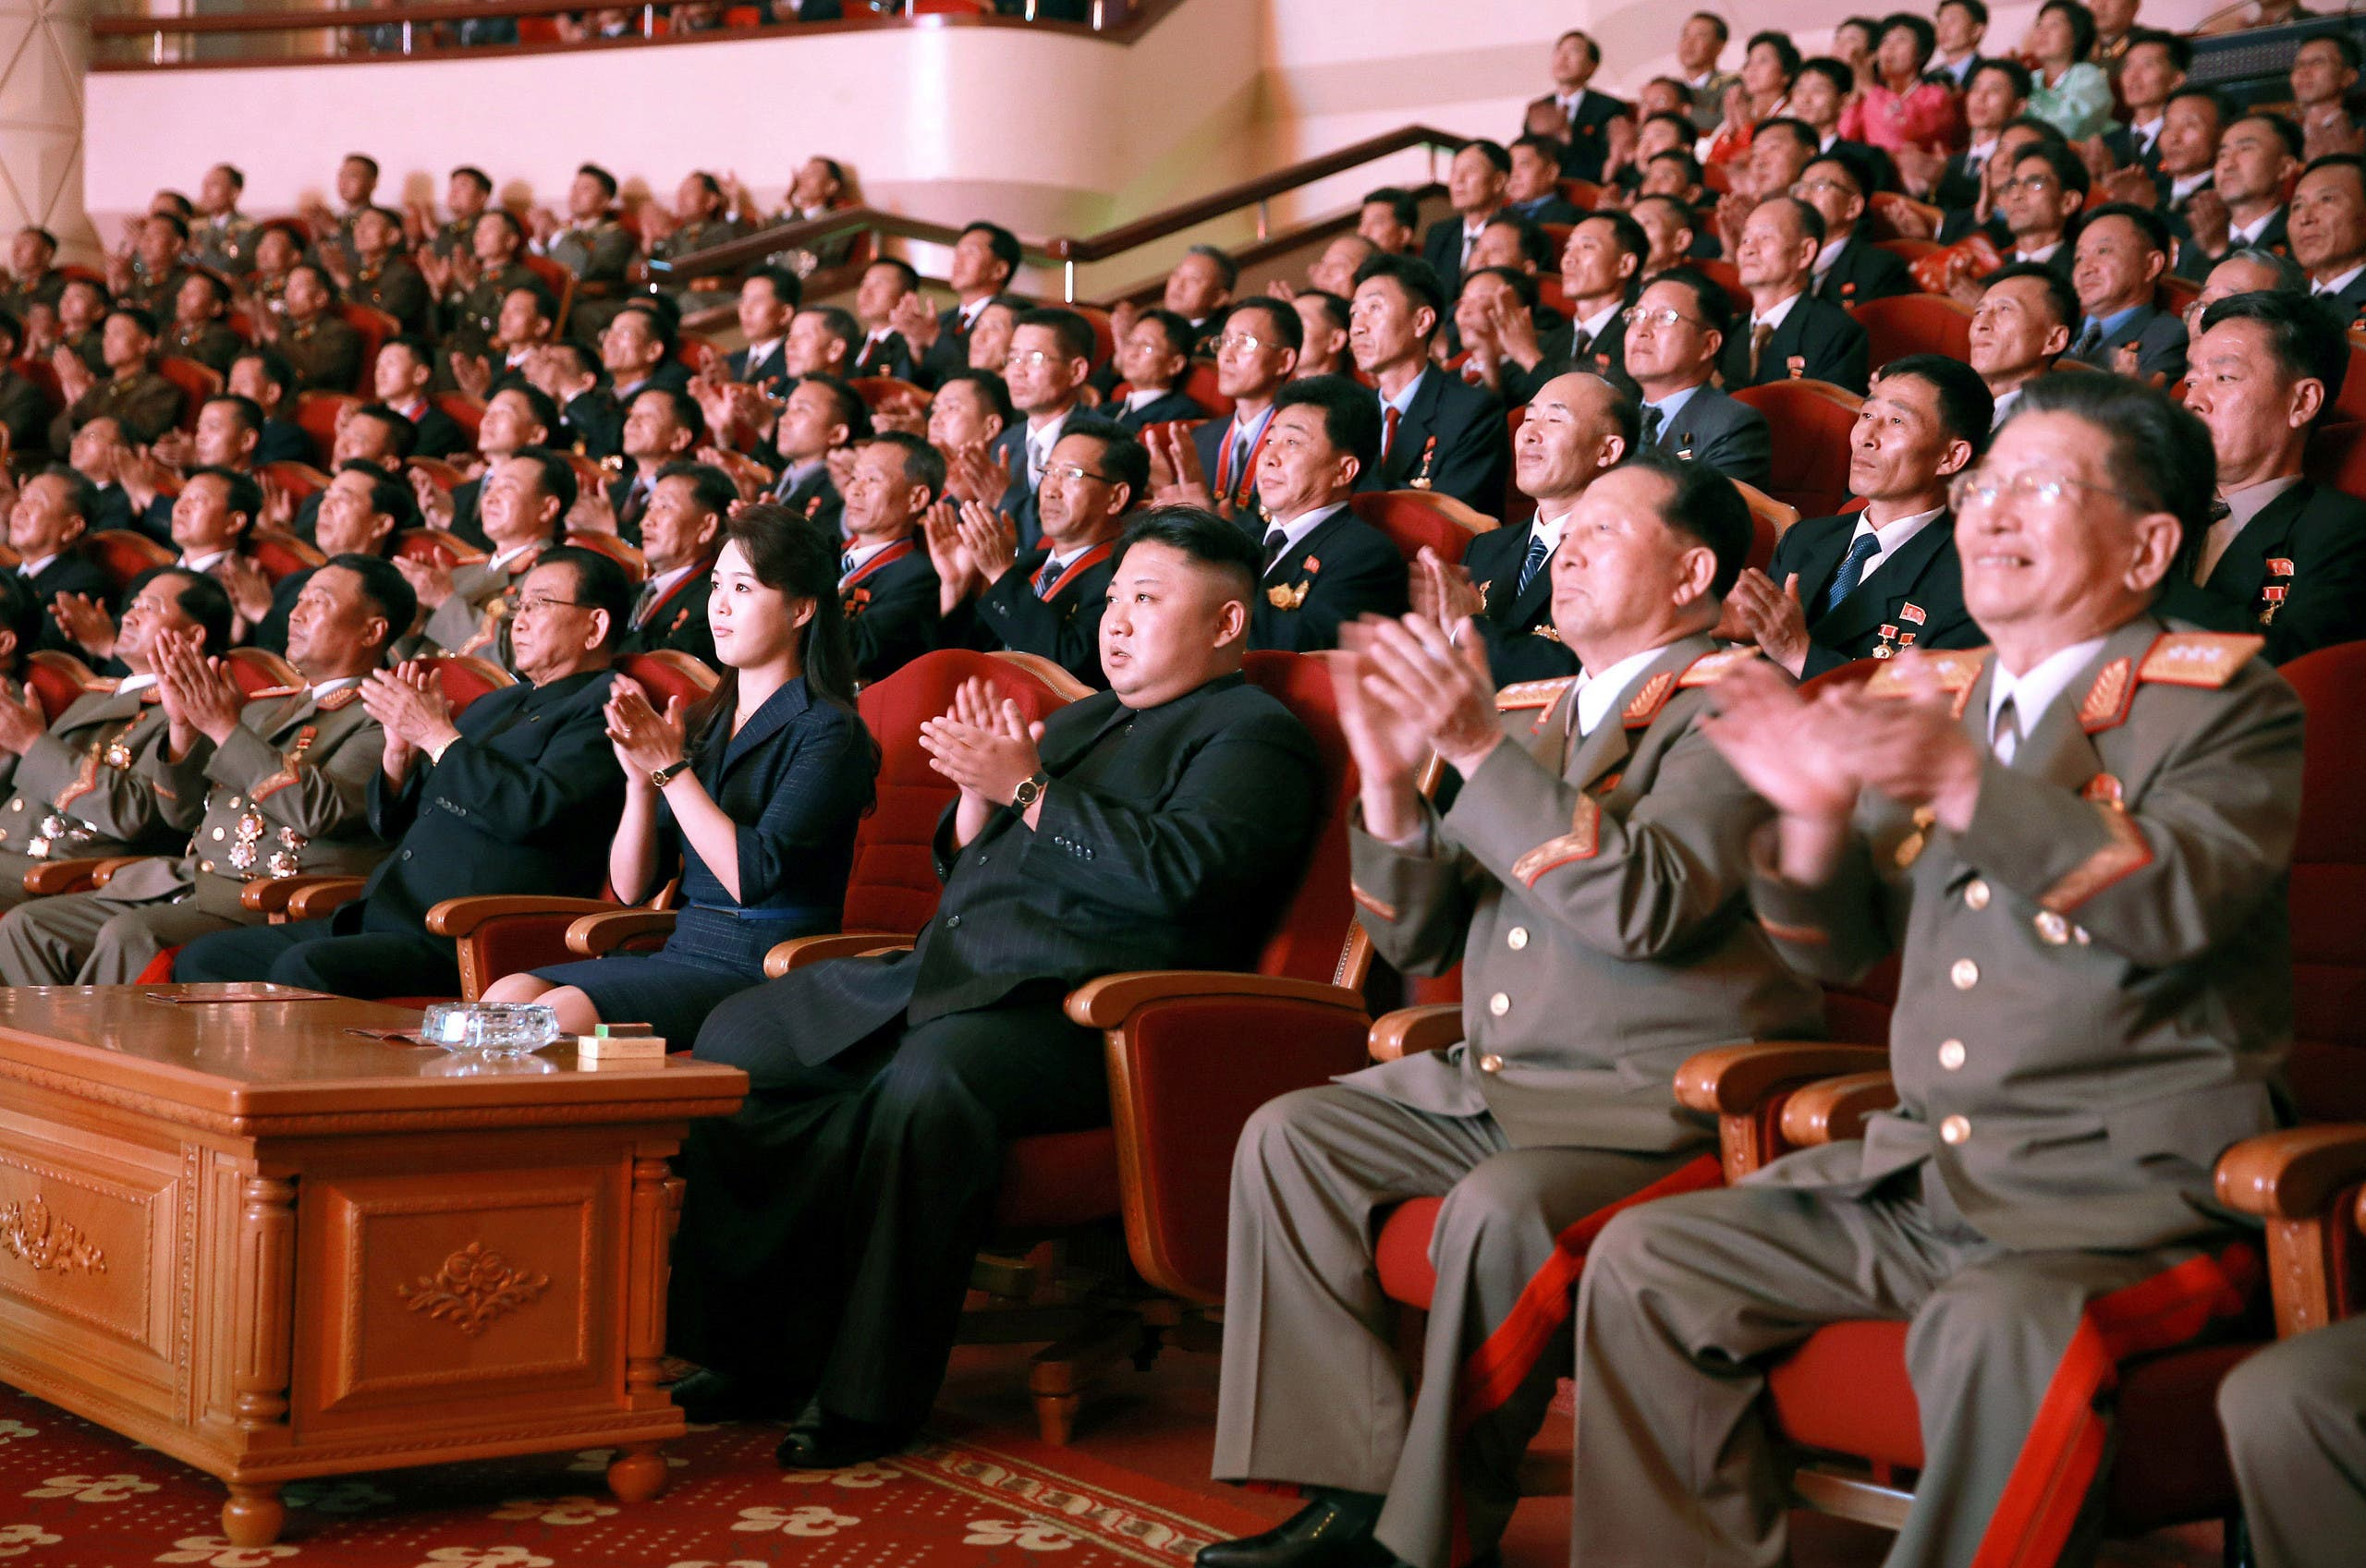 North Korean leader Kim Jong-Un during a celebration for nuclear scientists and engineers in this undated photo released by KCNA on September 10, 2017. (File photo: Reuters)